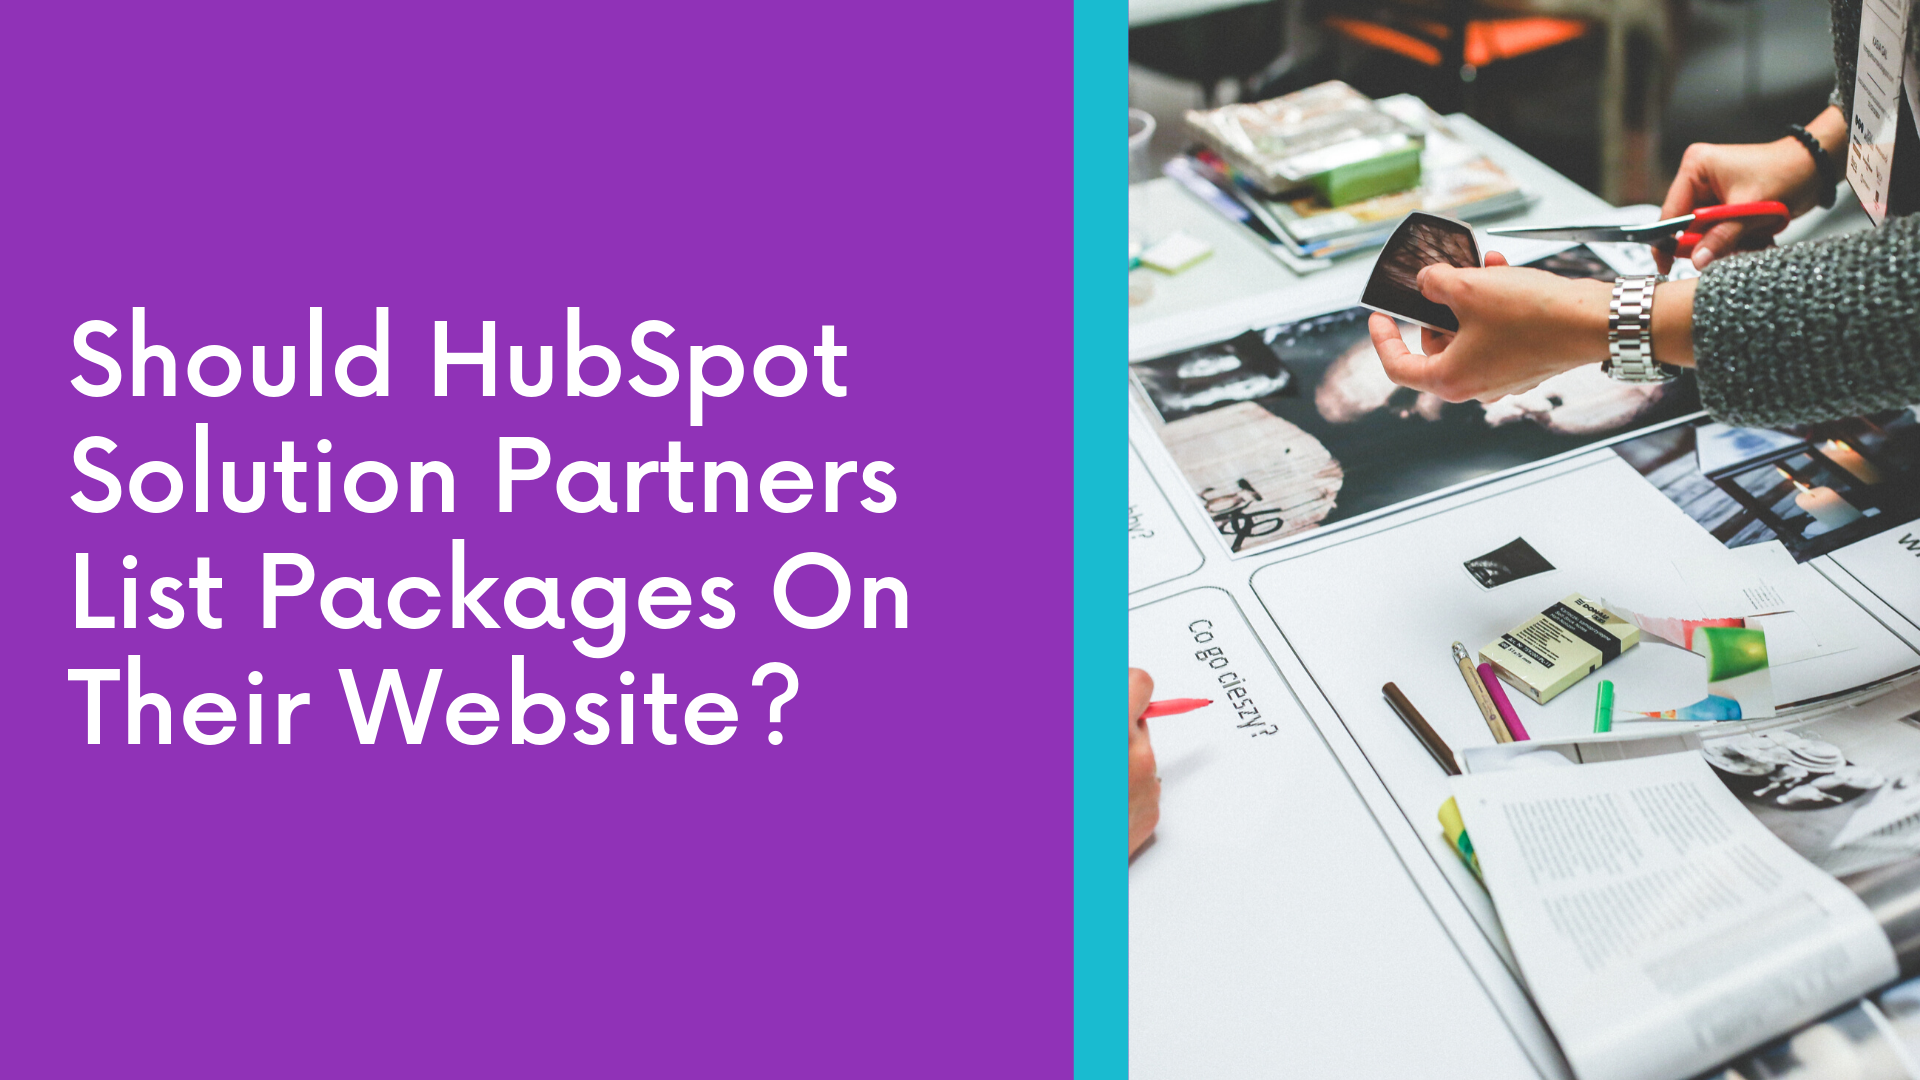 hubspot solution partners